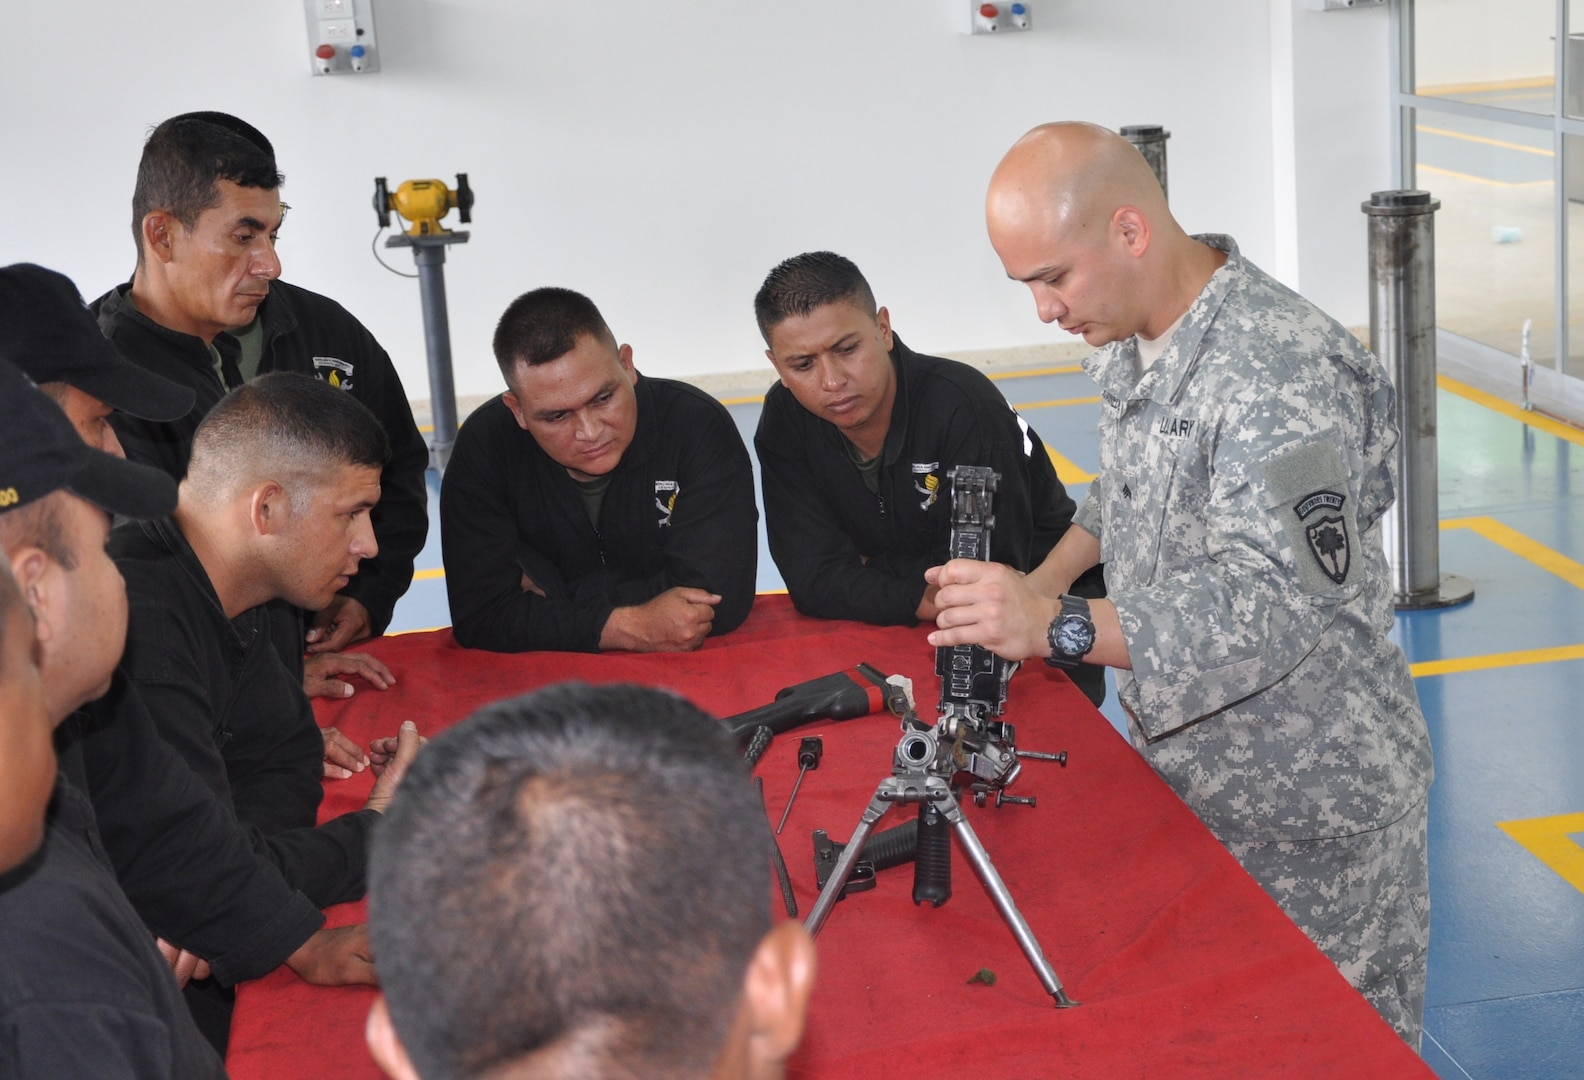 U.S. Army Sgt. Daniel Garcia-Benedetti, a small arms repairman in the 742nd Support Maintenance Company, South Carolina National Guard, teaches Colombian army maintenance workers how to troubleshoot malfunctions and break down an M240 machine gun, June 2014.